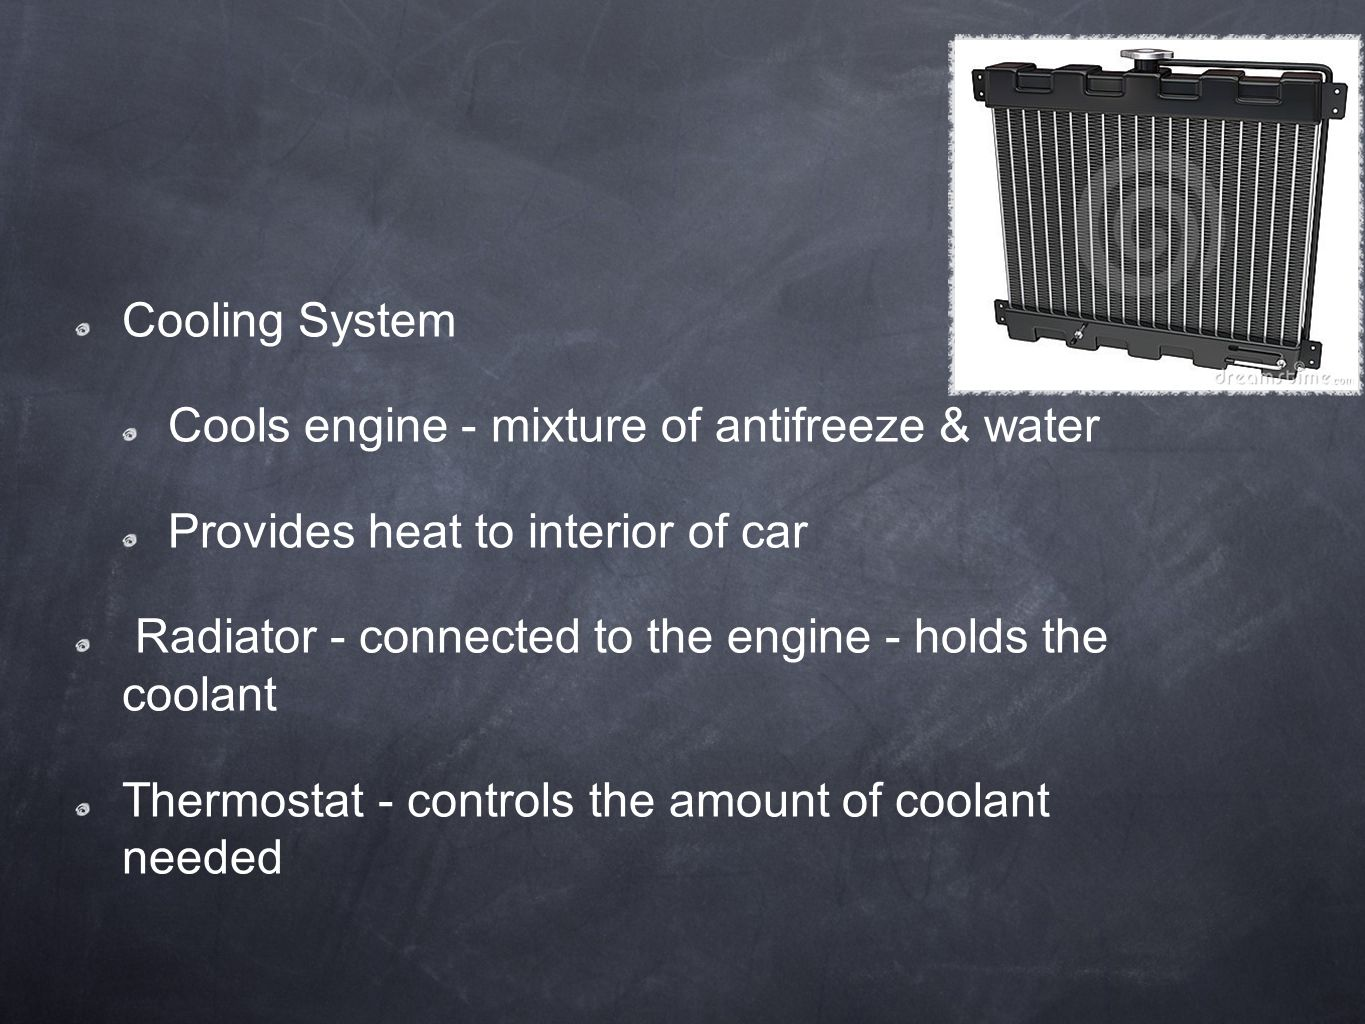 Cooling System Cools engine - mixture of antifreeze & water. Provides heat to interior of car.